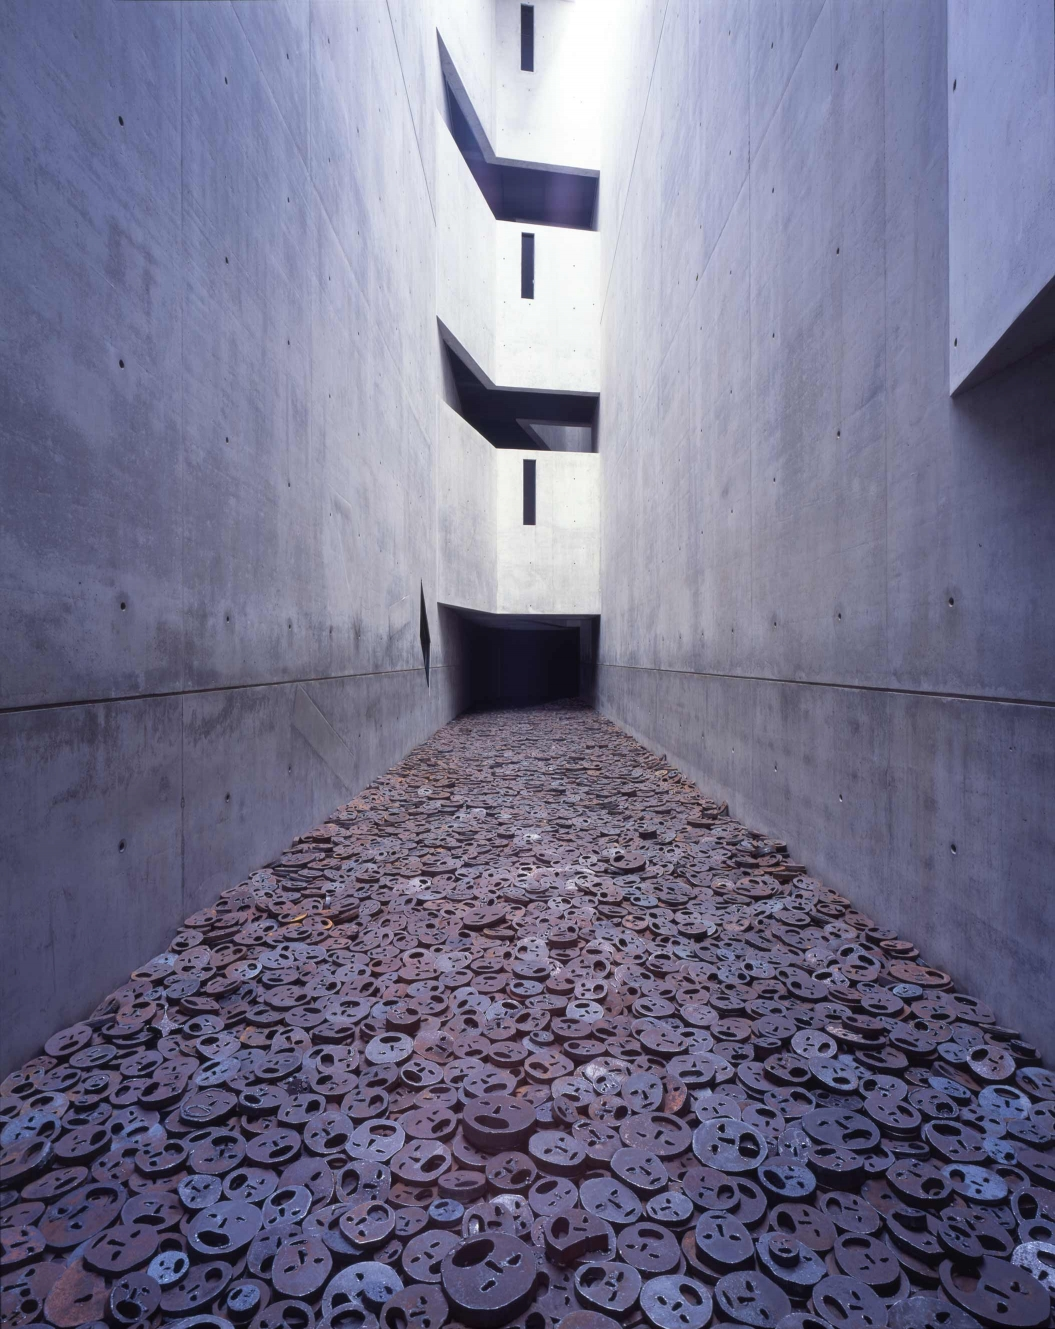 One of many such spaces throughout the Libeskind Building, the  Memory Void features the haunting  Schalechet  installation by Menashe Kadishman.  Photo:Jens Ziehe.